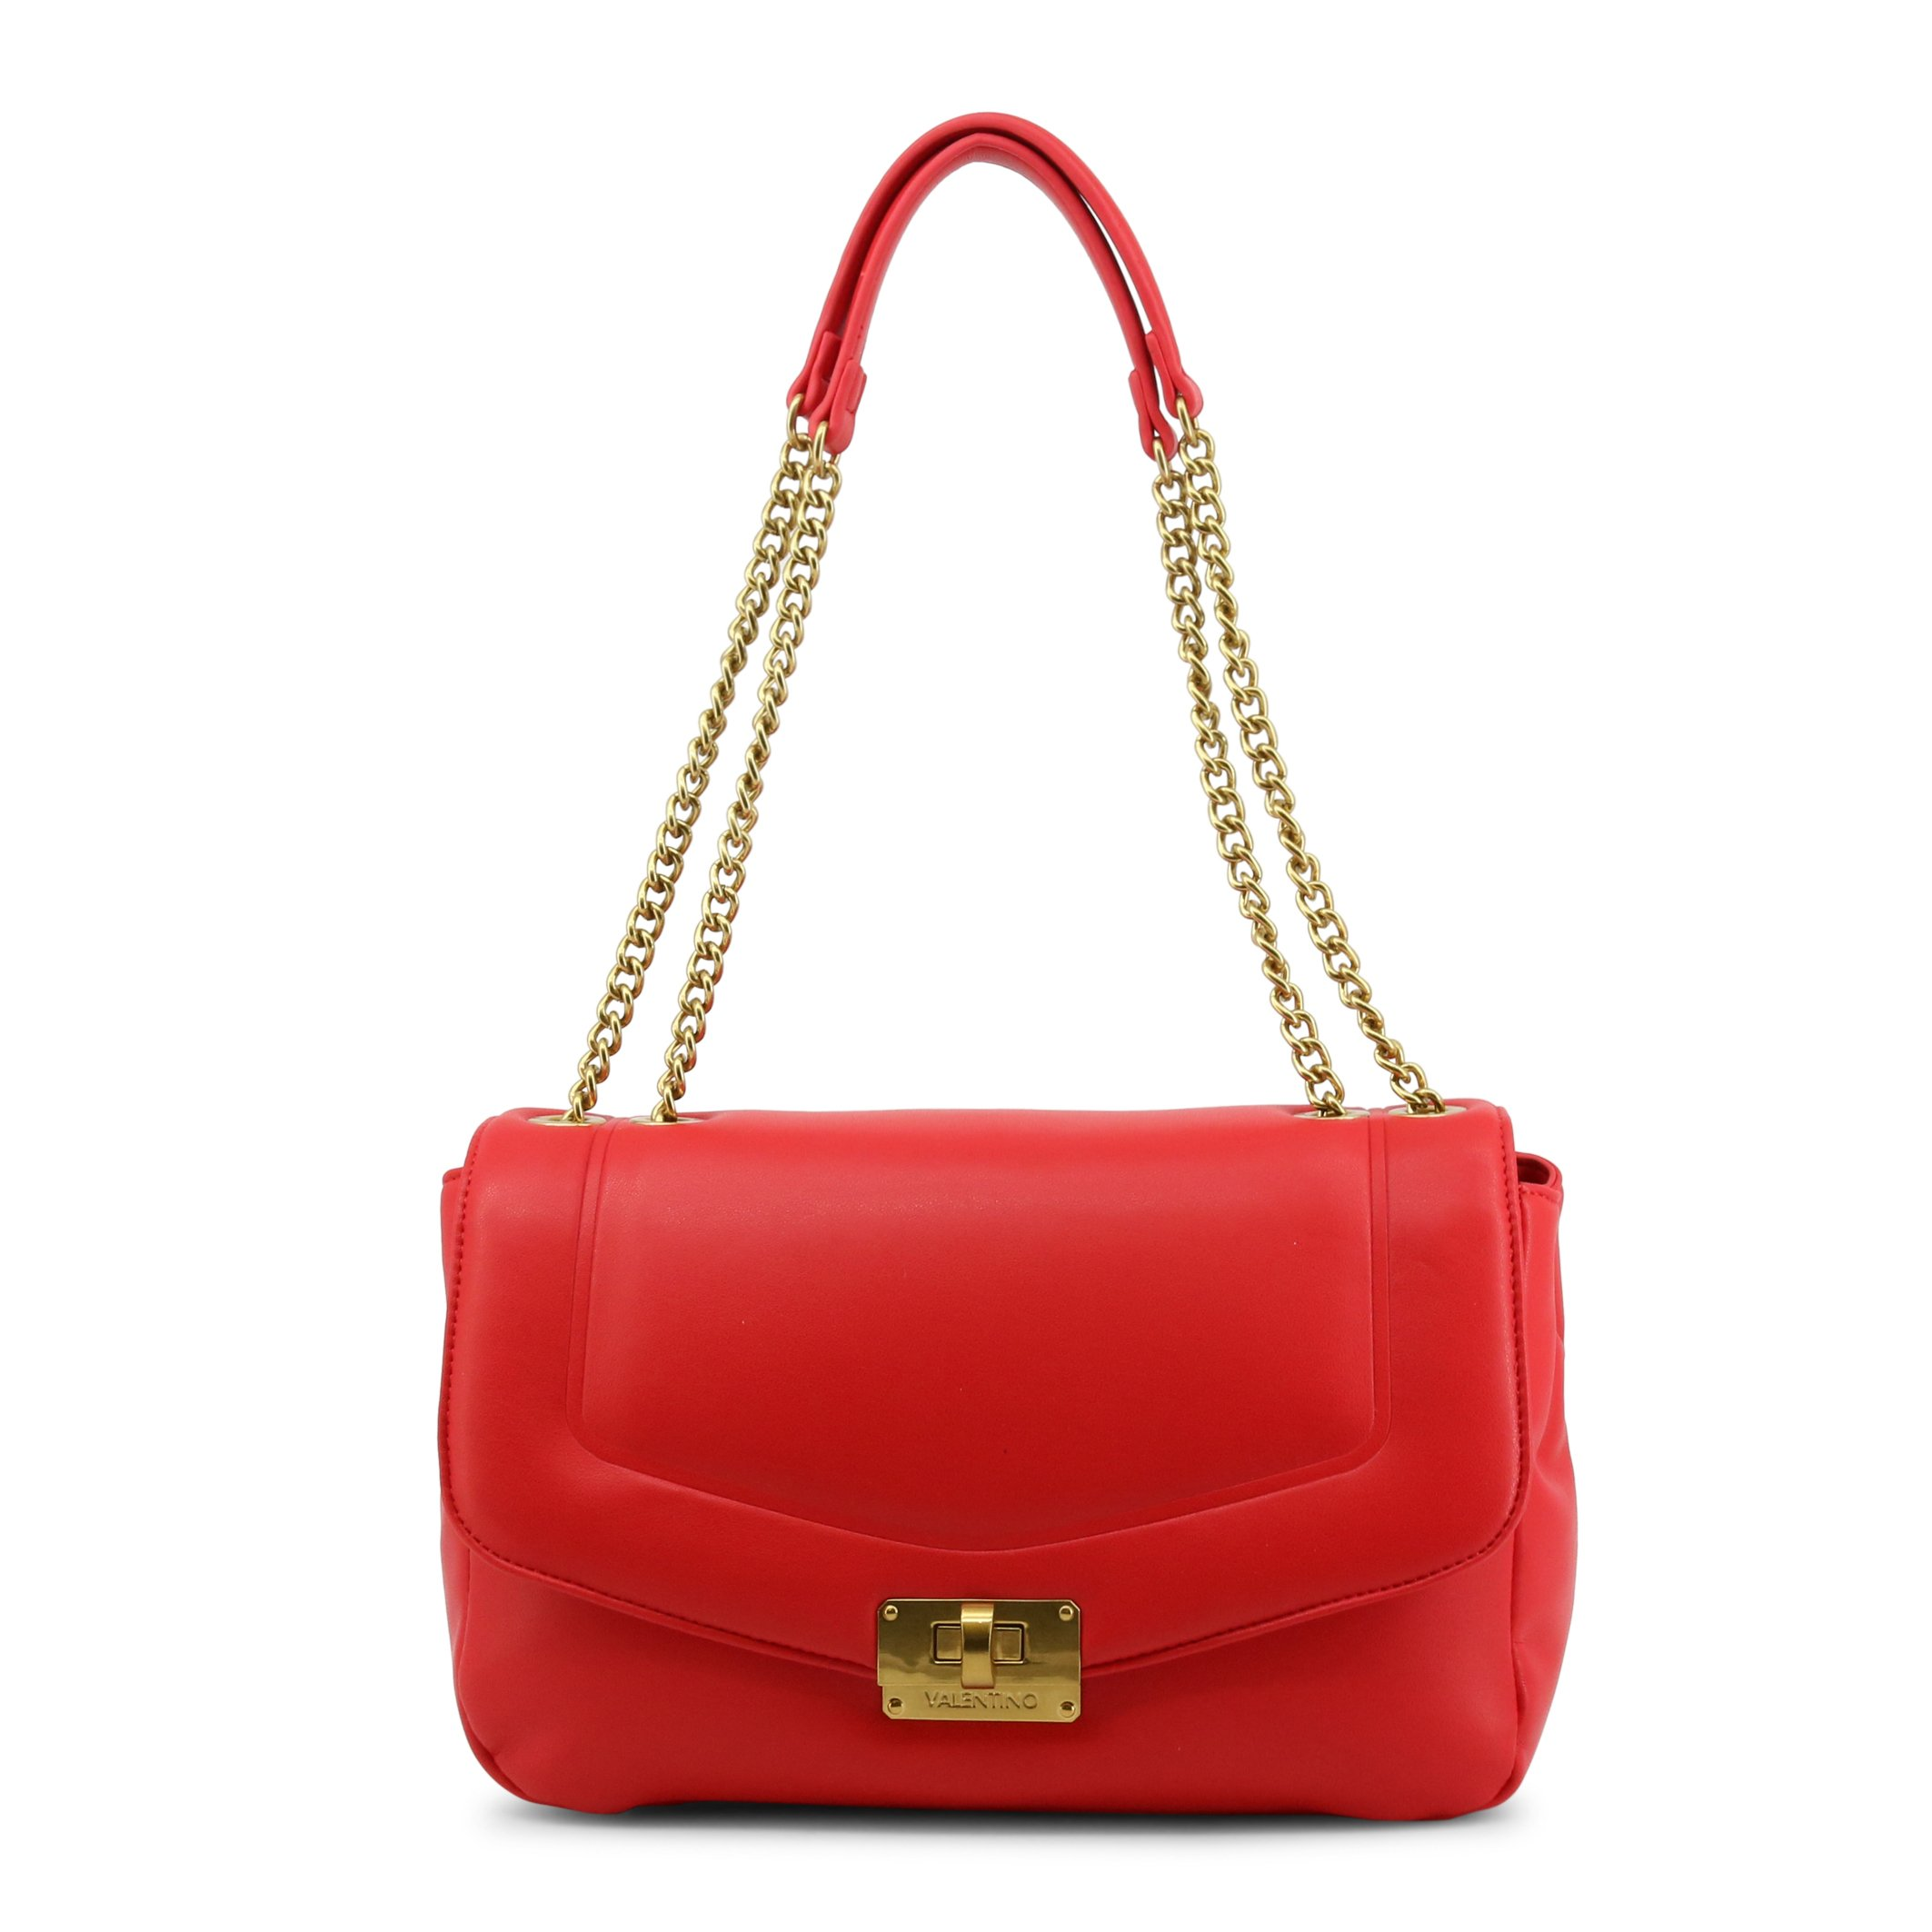 Valentino by Mario Valentino Women's Shoulder Bag Various Colours DAM-VBS4N801 - red NOSIZE